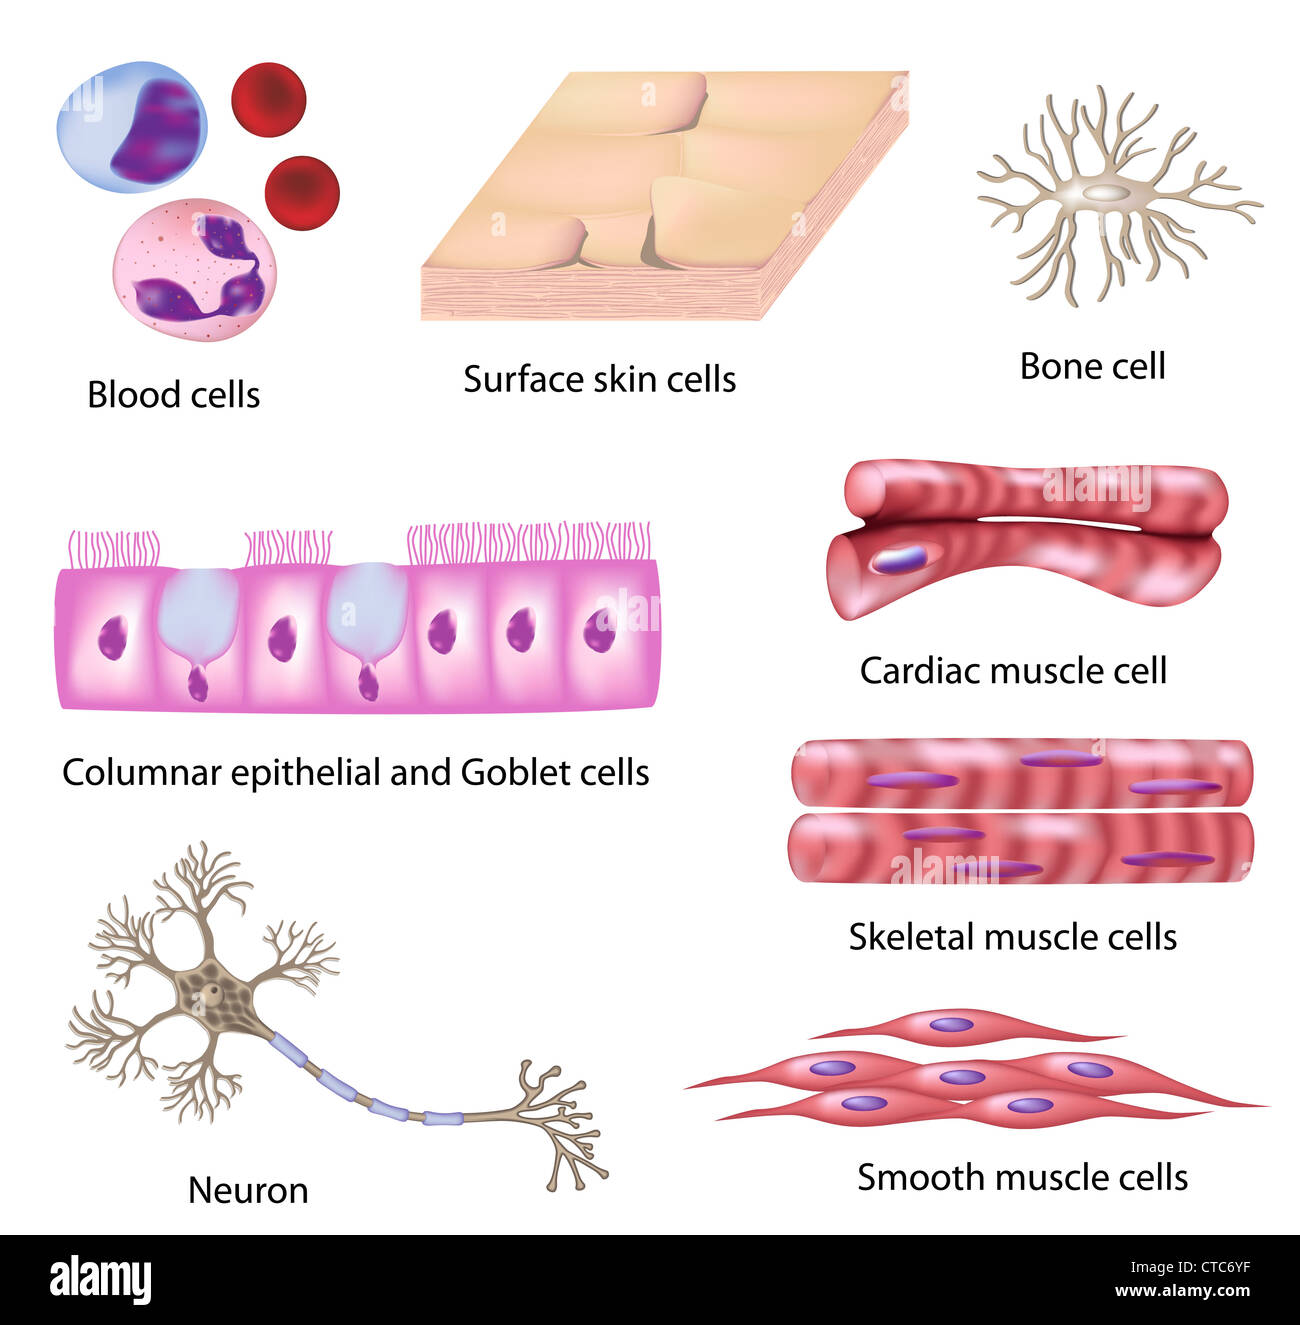 Cardiac Muscle Cell Stock Photos Cardiac Muscle Cell Stock Images